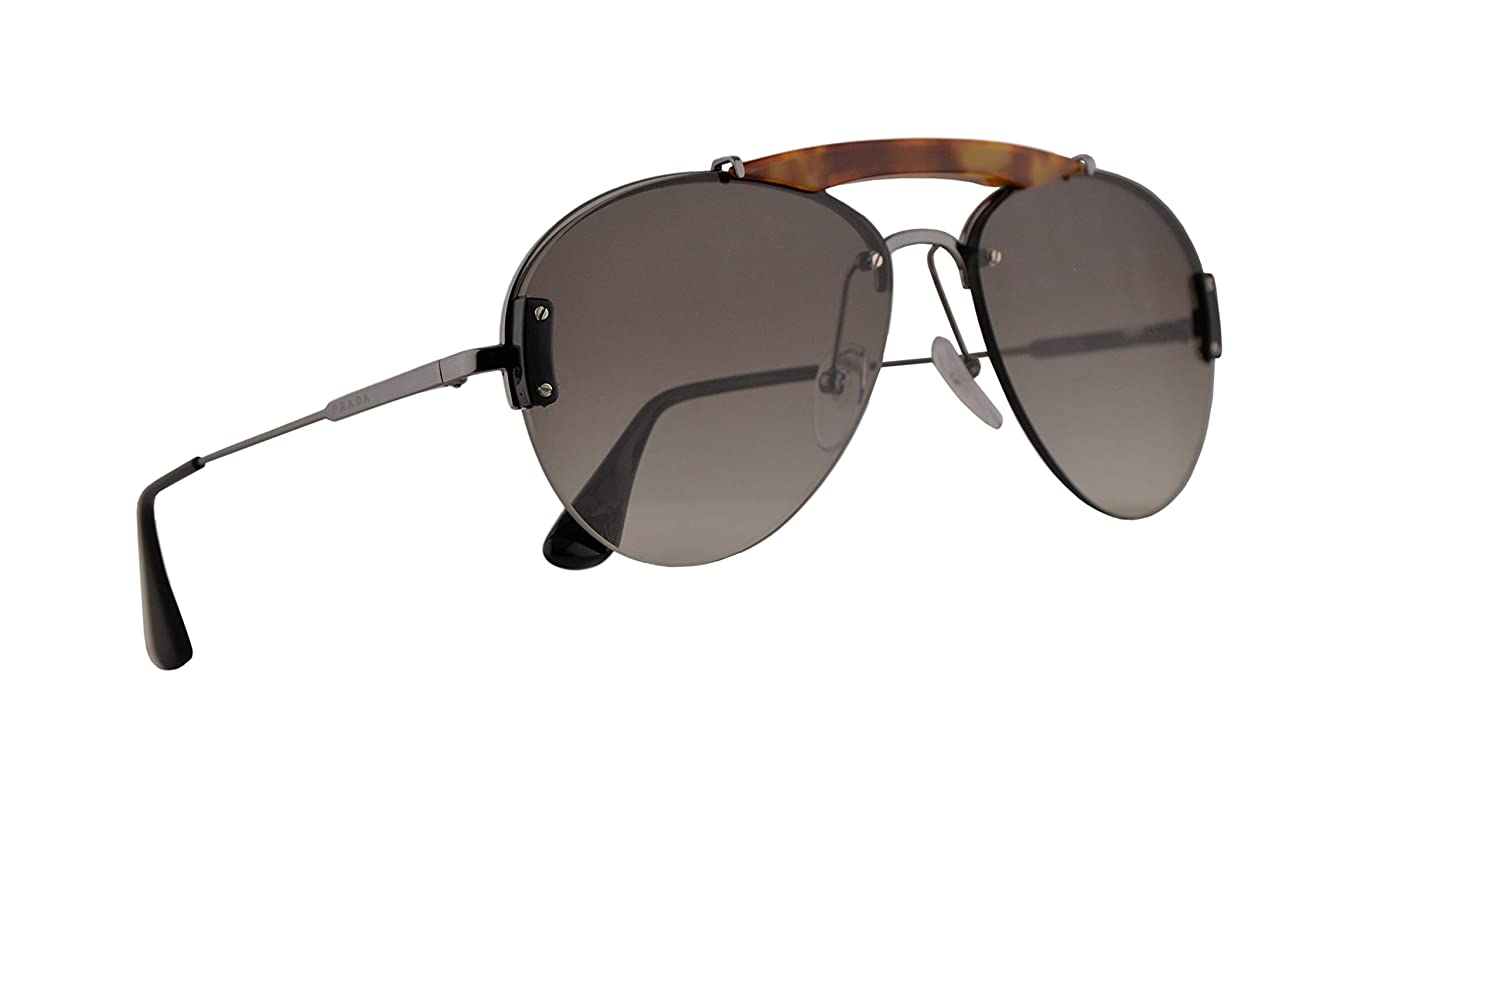 ece298754e Amazon.com  Prada PR62US Sunglasses Light Havana Gunmetal w Grey Gradient  32mm Lens 2990A7 PR 62US SPR 62U SPR62U  Clothing